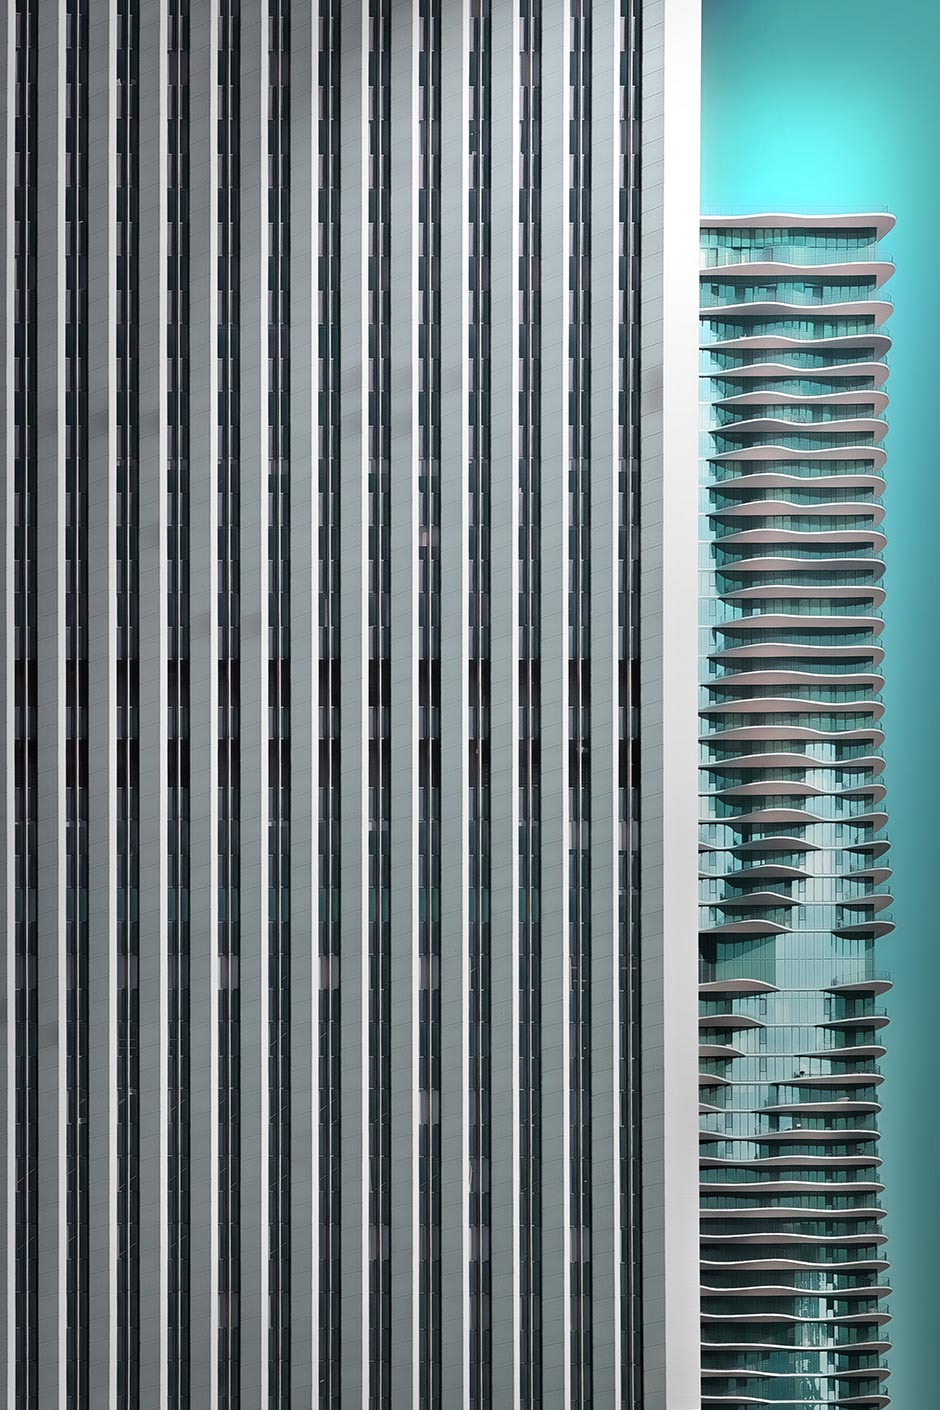 Chicago Facade Aqua Tower Architekturfotograf Rolf Mauer